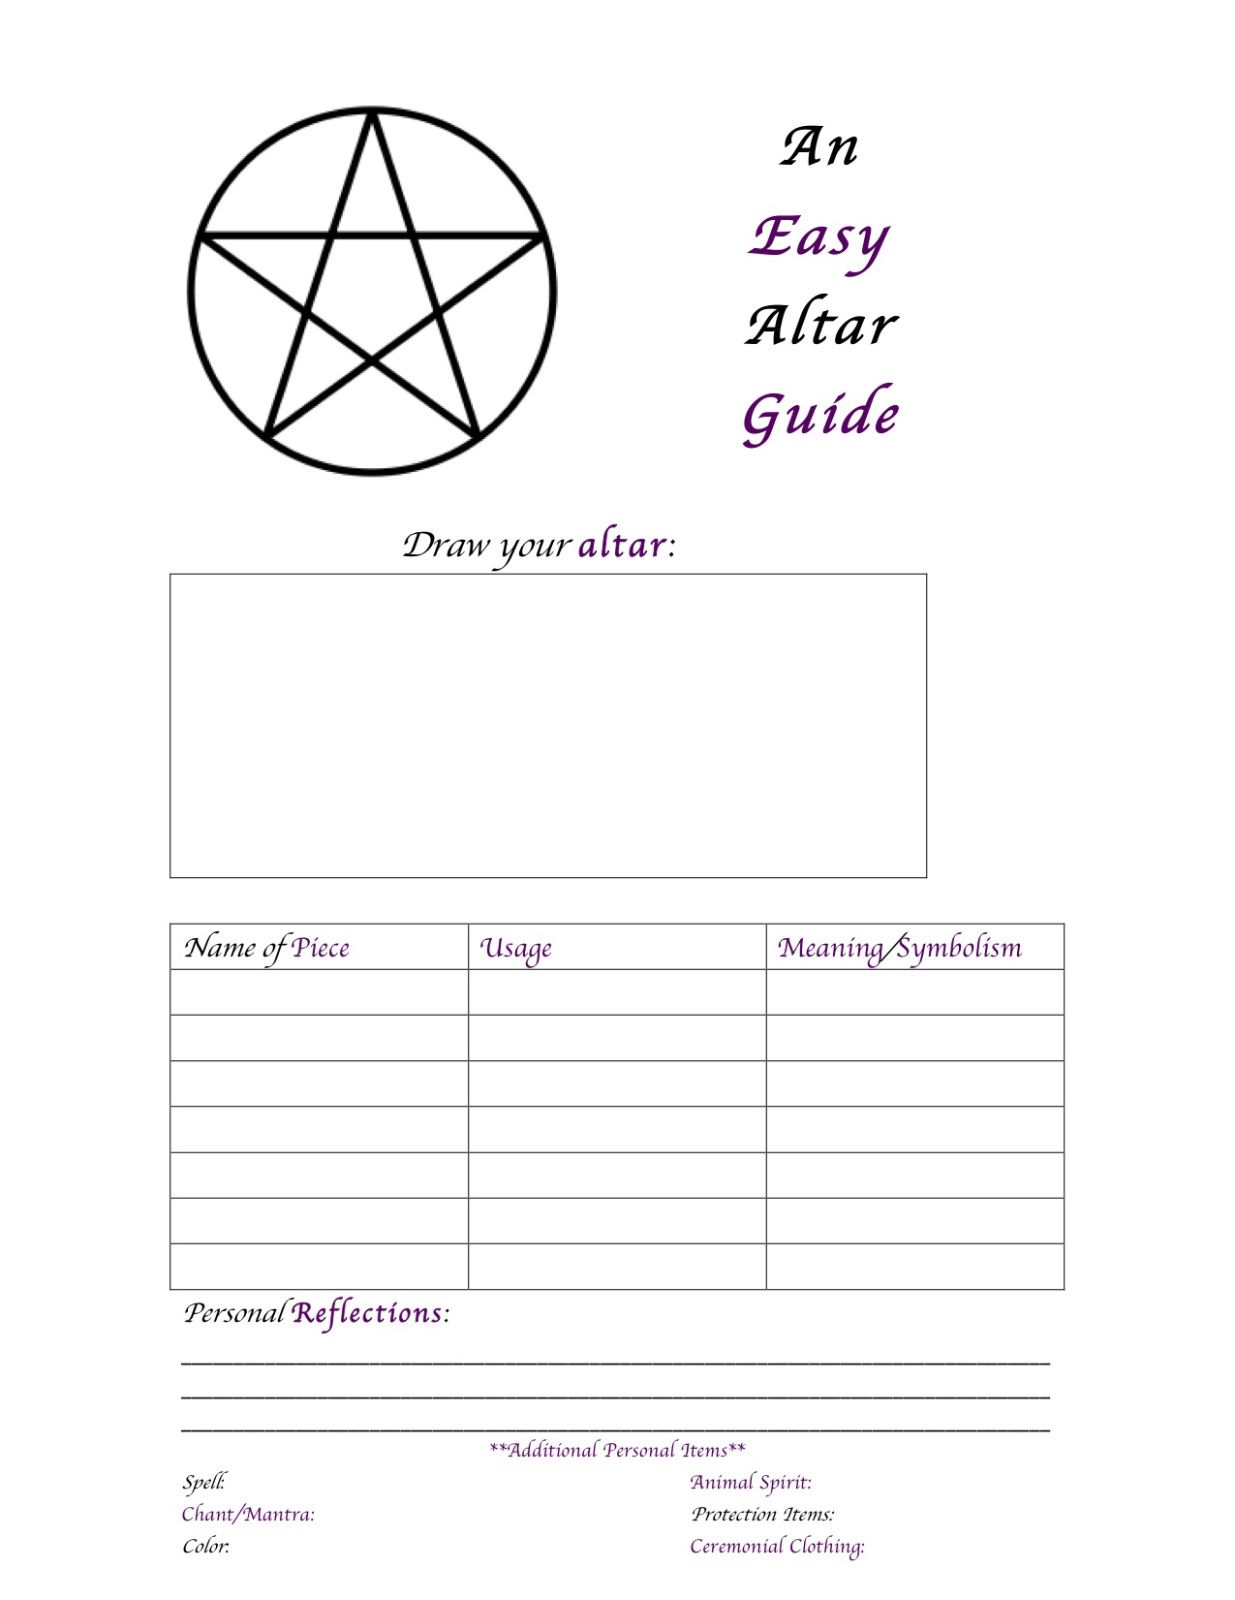 An Easy Altar Guide Printable